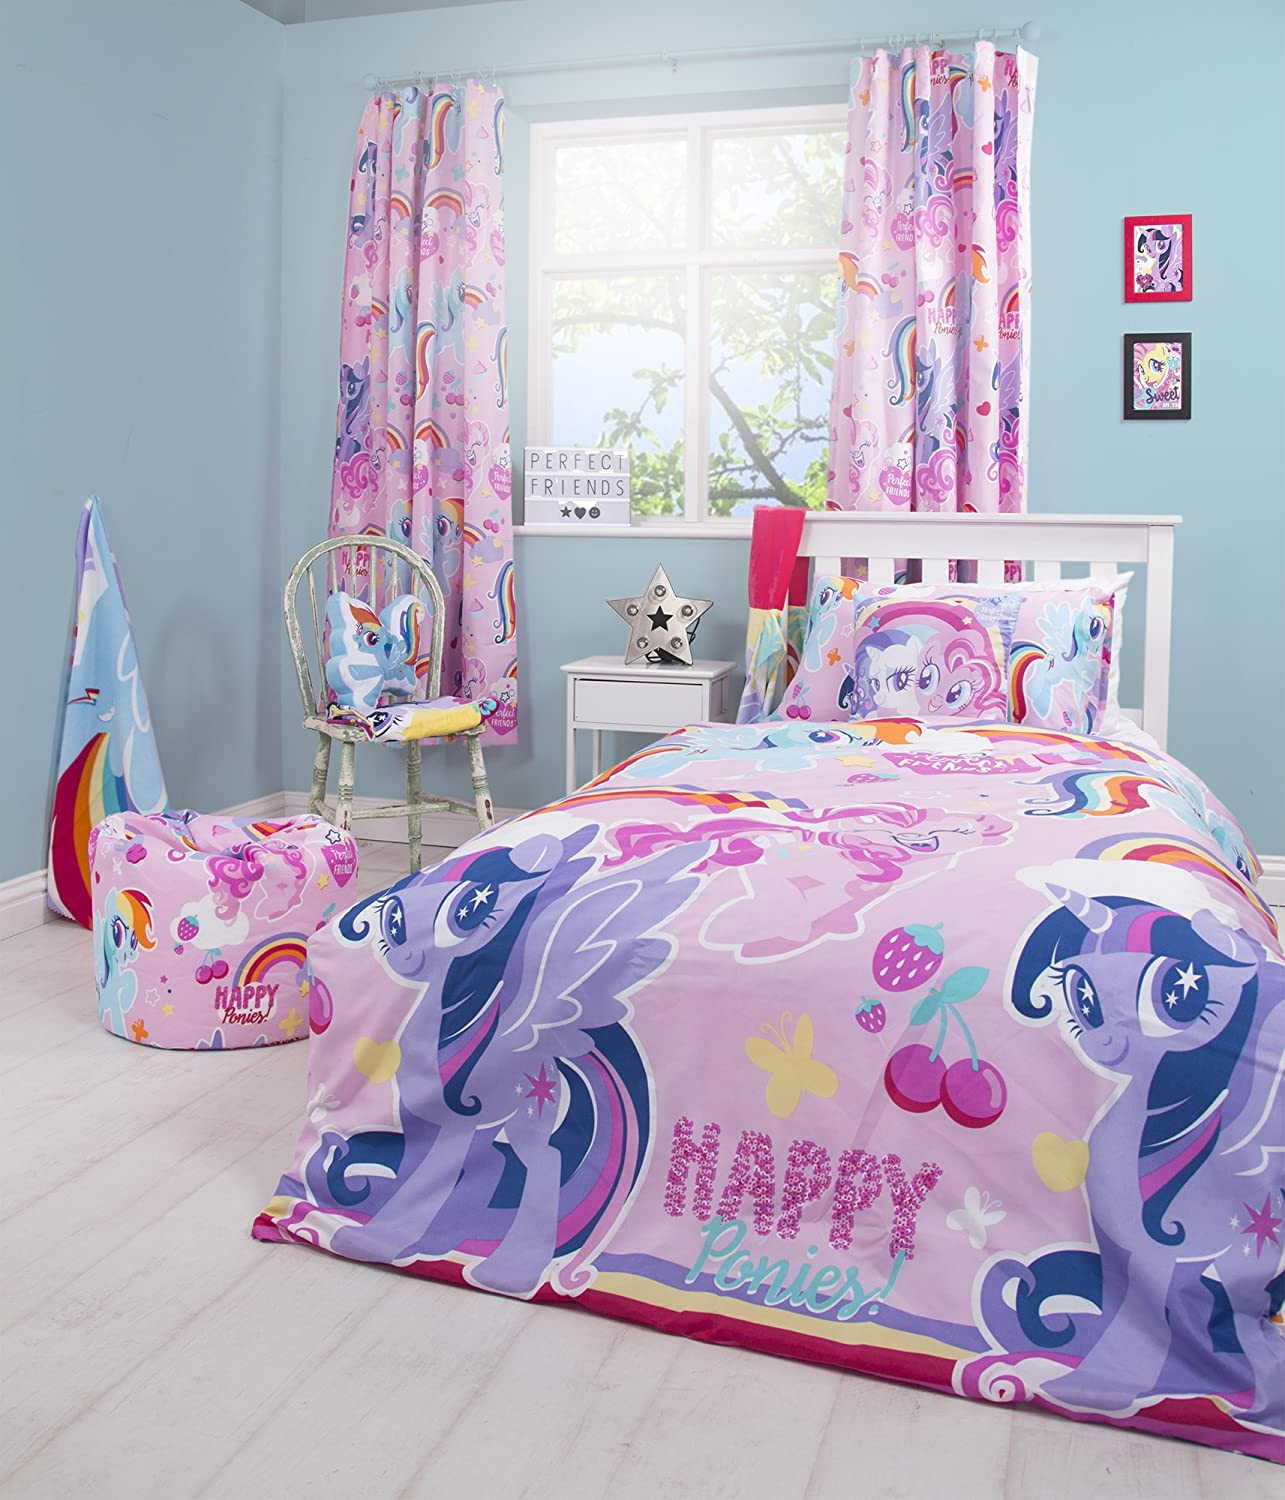 My Little Pony Crush Childrens Bedroom 72 Inch Curtains Perfect For Any Girls Bedroom